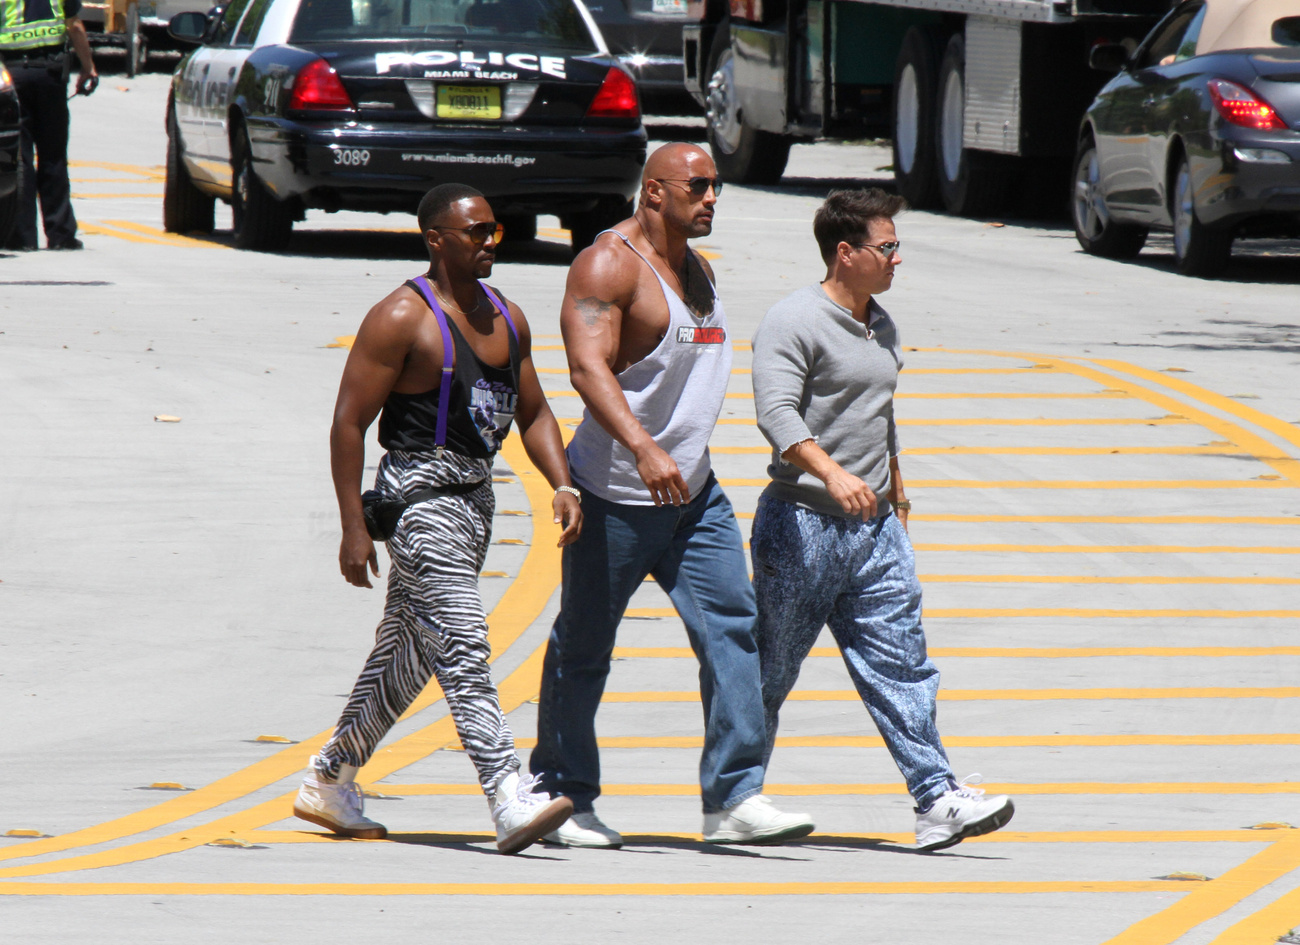 Dwayne Johnson és Mark Wahlberg a Pain and Gain című filmet forgatják